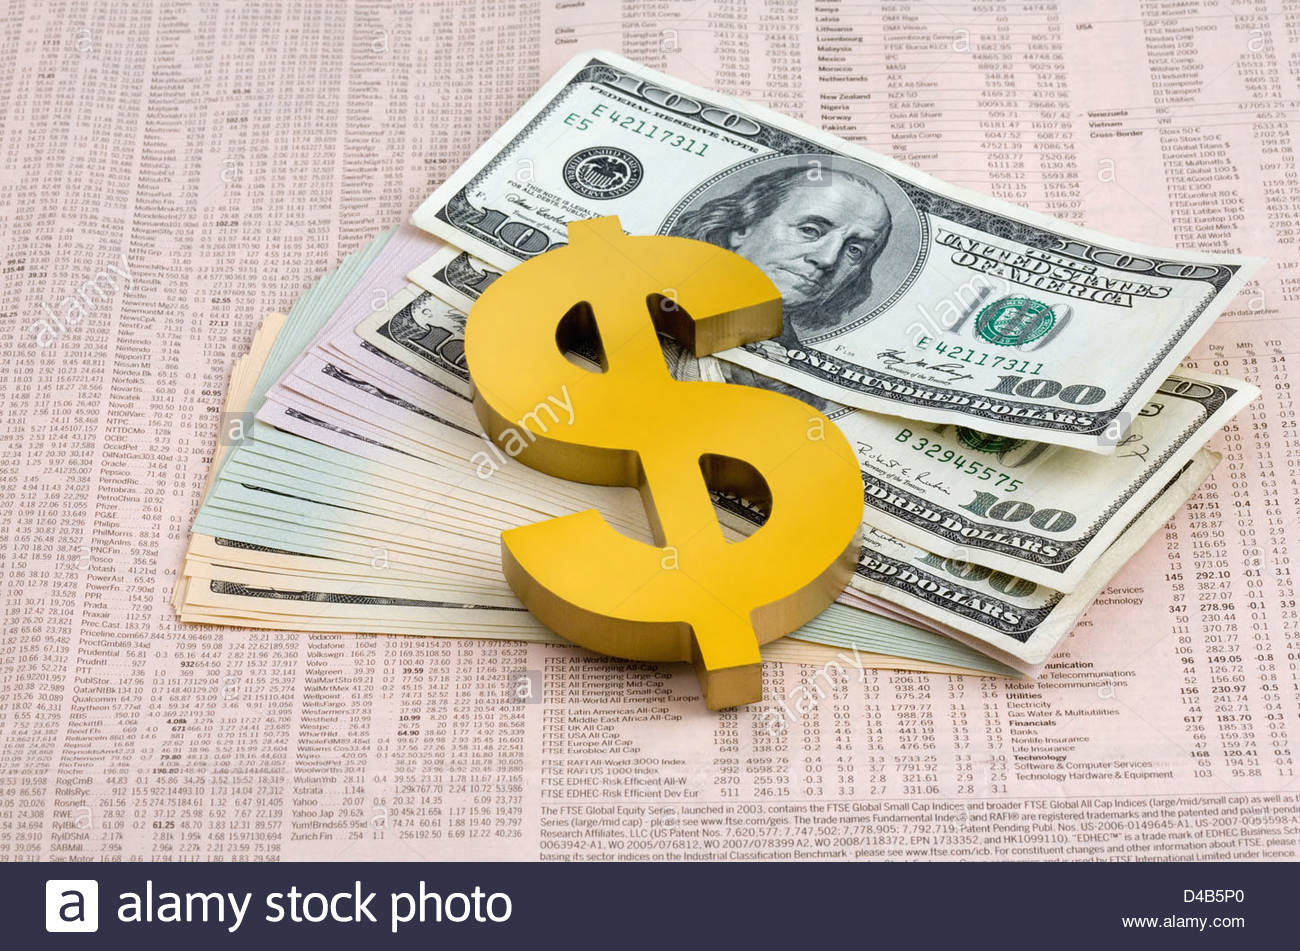 Dollar symbol paper weight laying on dollar bills on the financial pages of a newspaper. - Stock Image